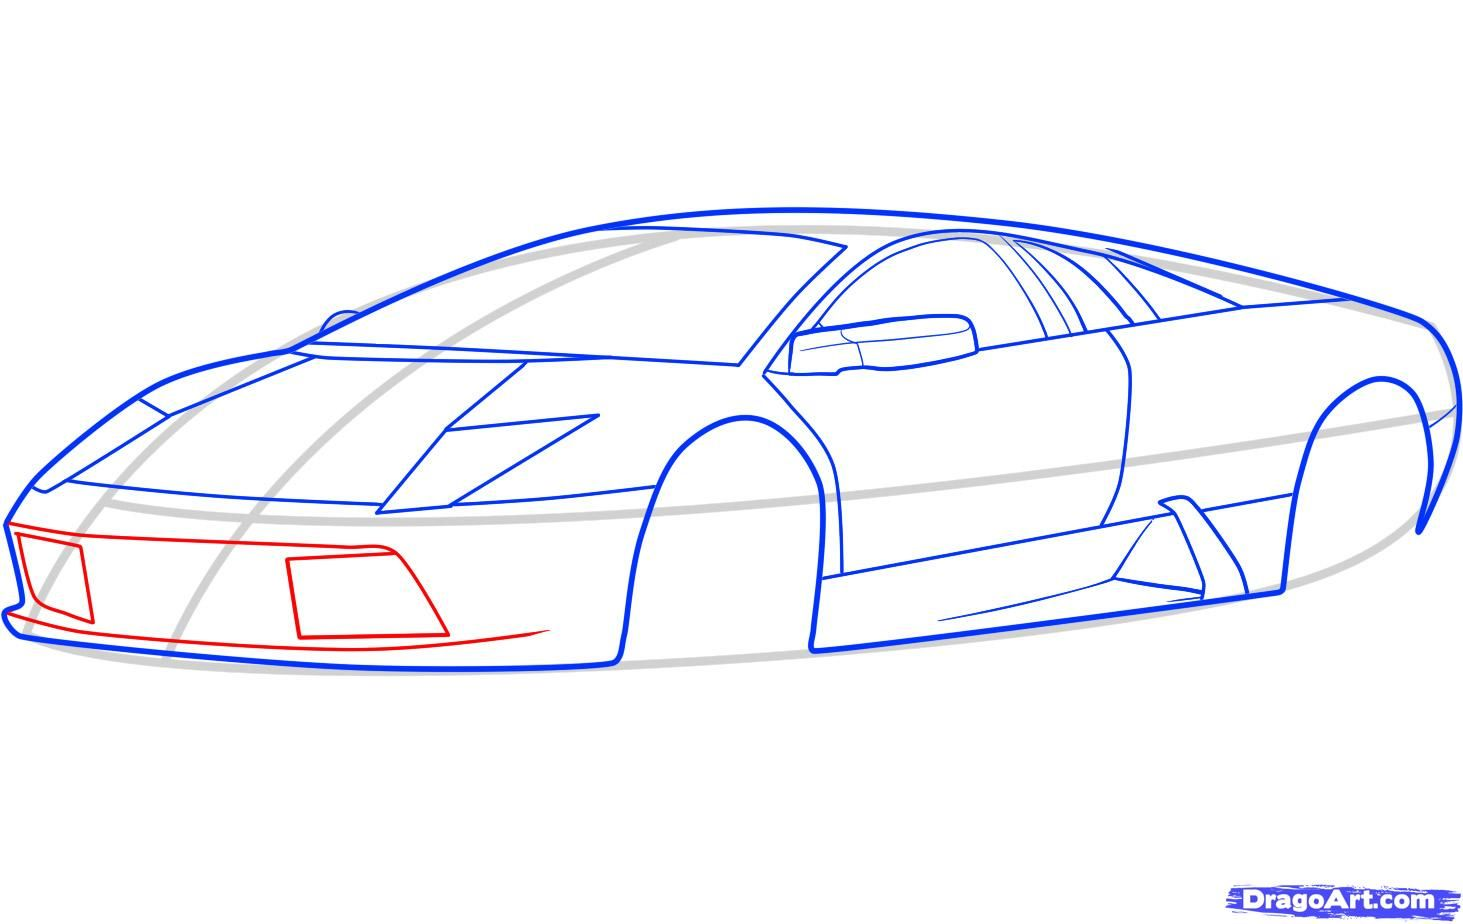 How to draw the Mercedes-Benz car step by step 6